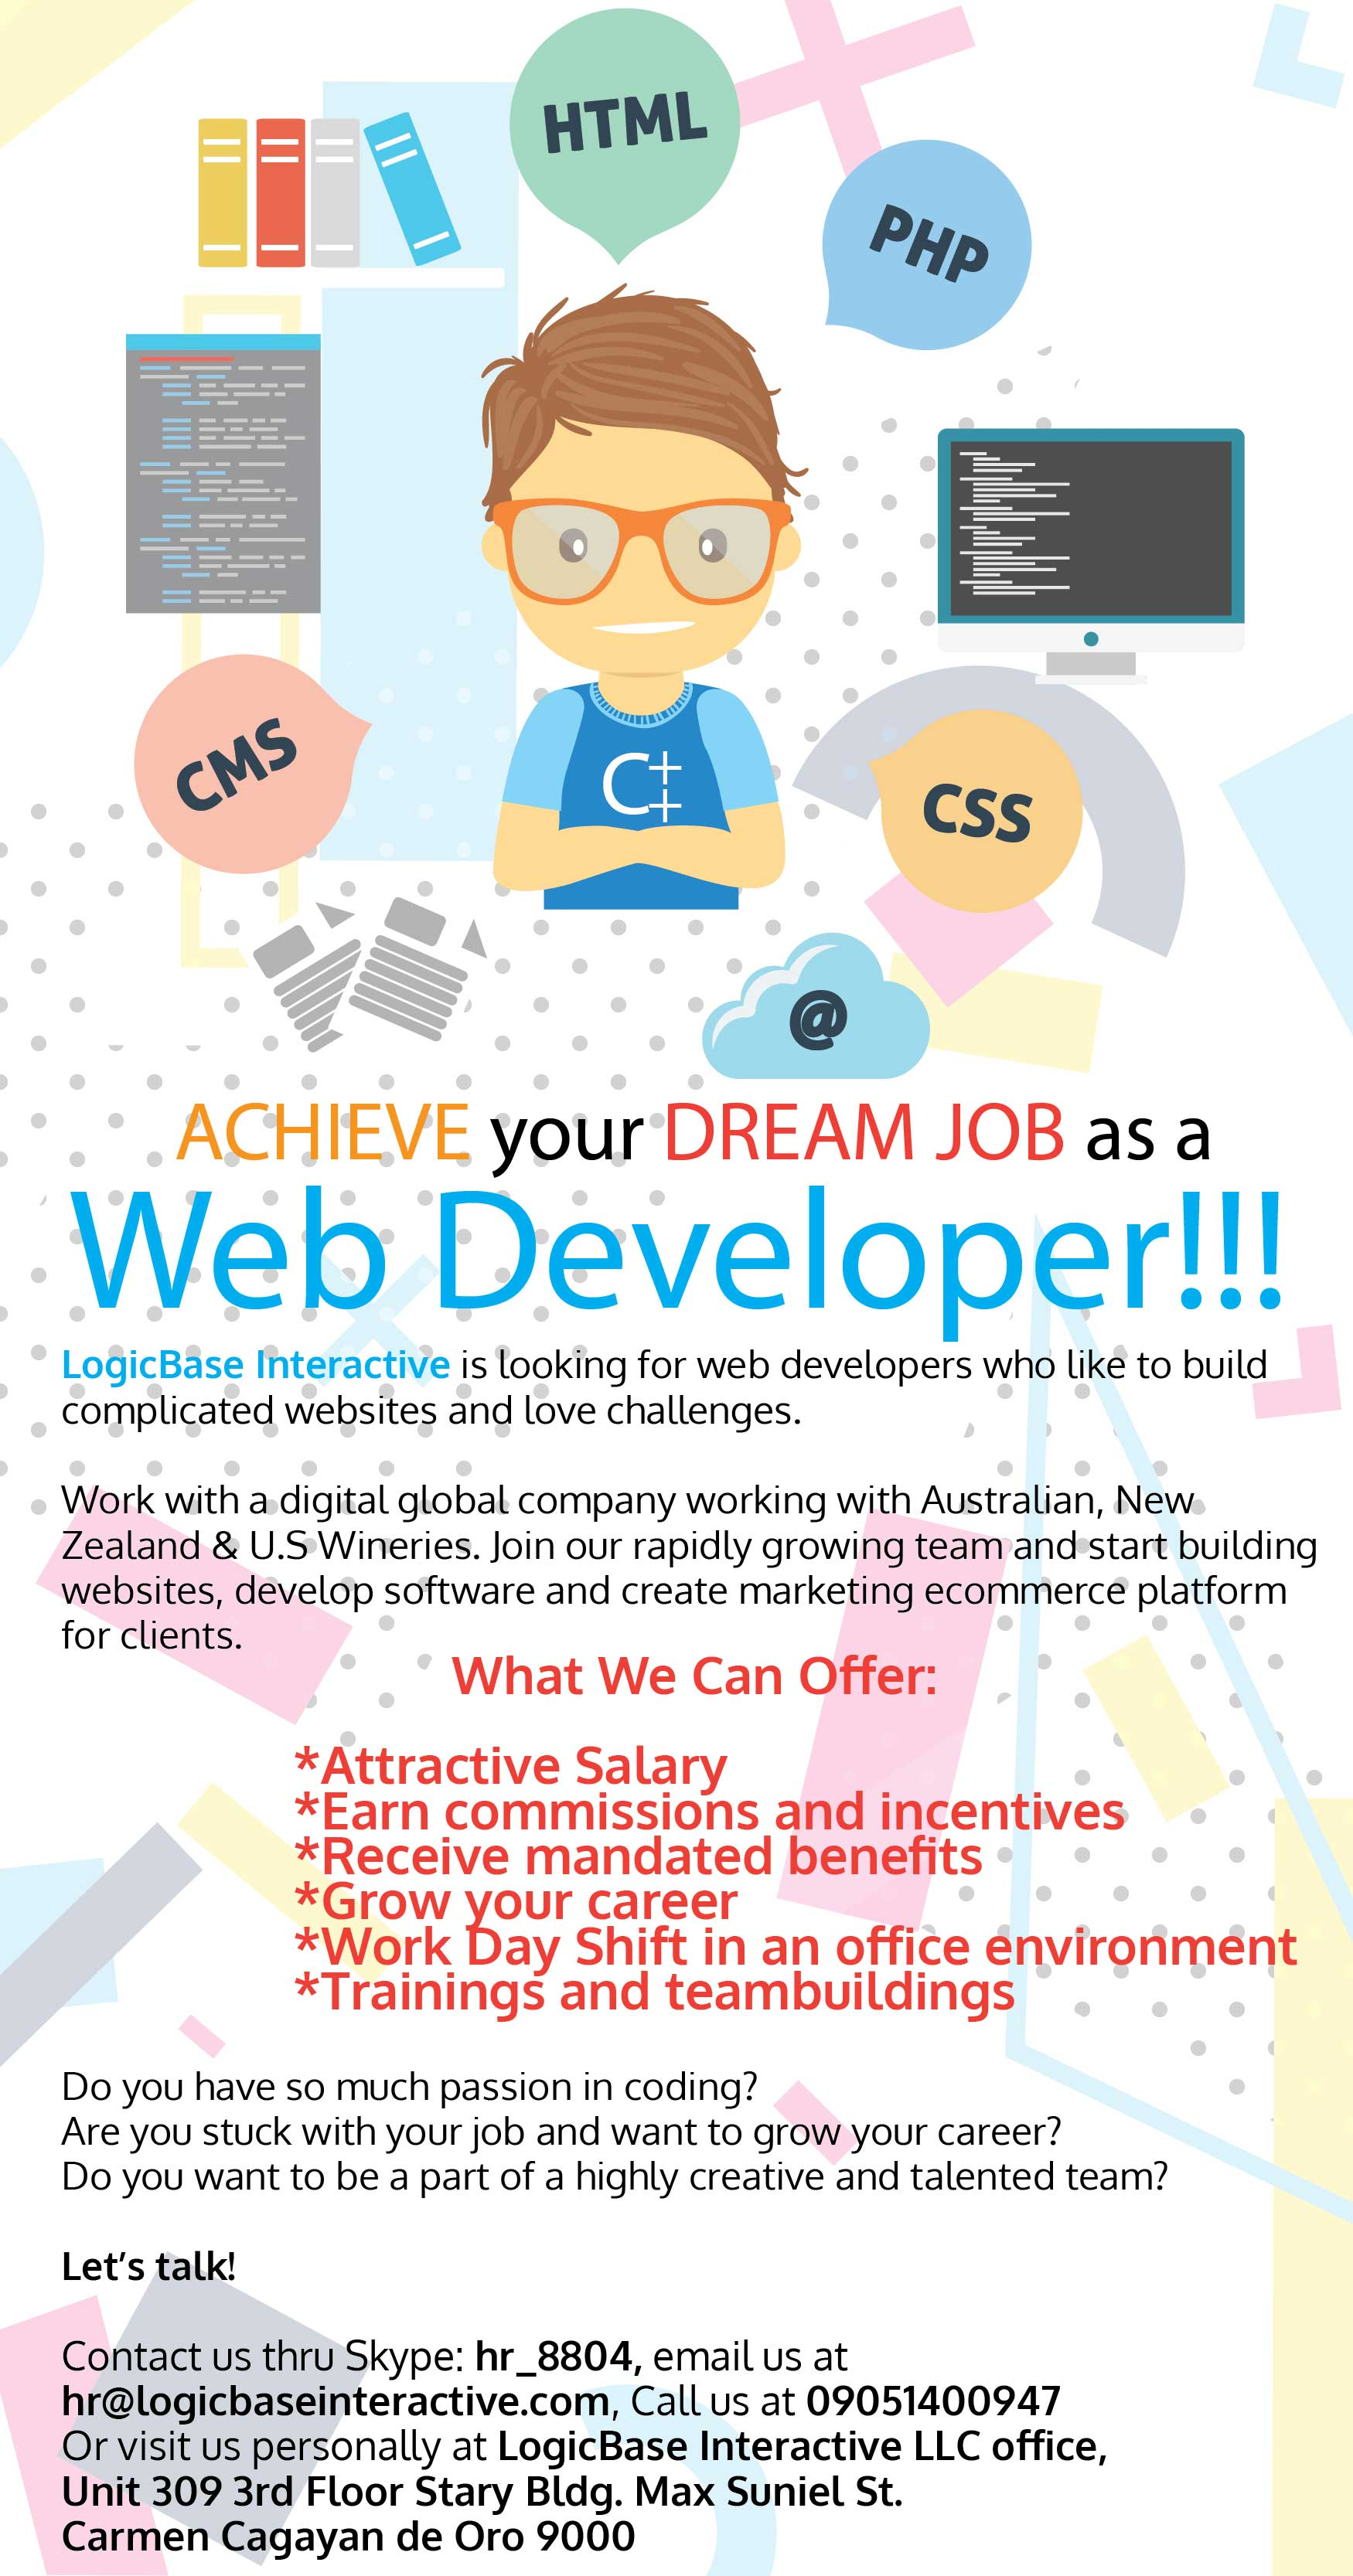 ACHIEVE Your DREAM JOB As A Web Developer